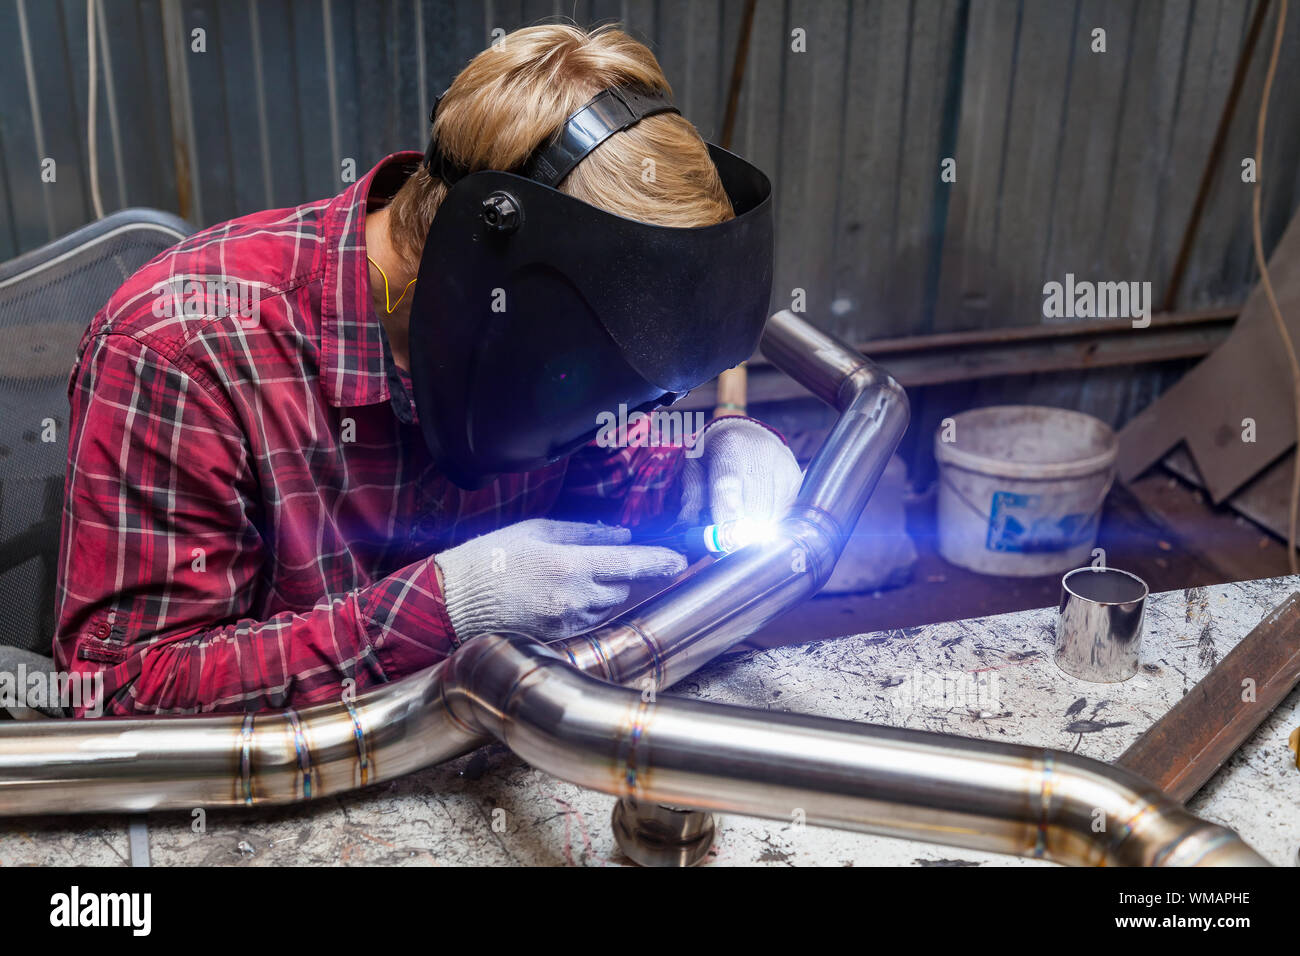 Young Guy Welder In A Checkered Red Shirt Welds A Stainless Steel Pipe For Car Exhaust Using Agronomic Welding To Protect His Eyes With A Mask In An I Stock Photo